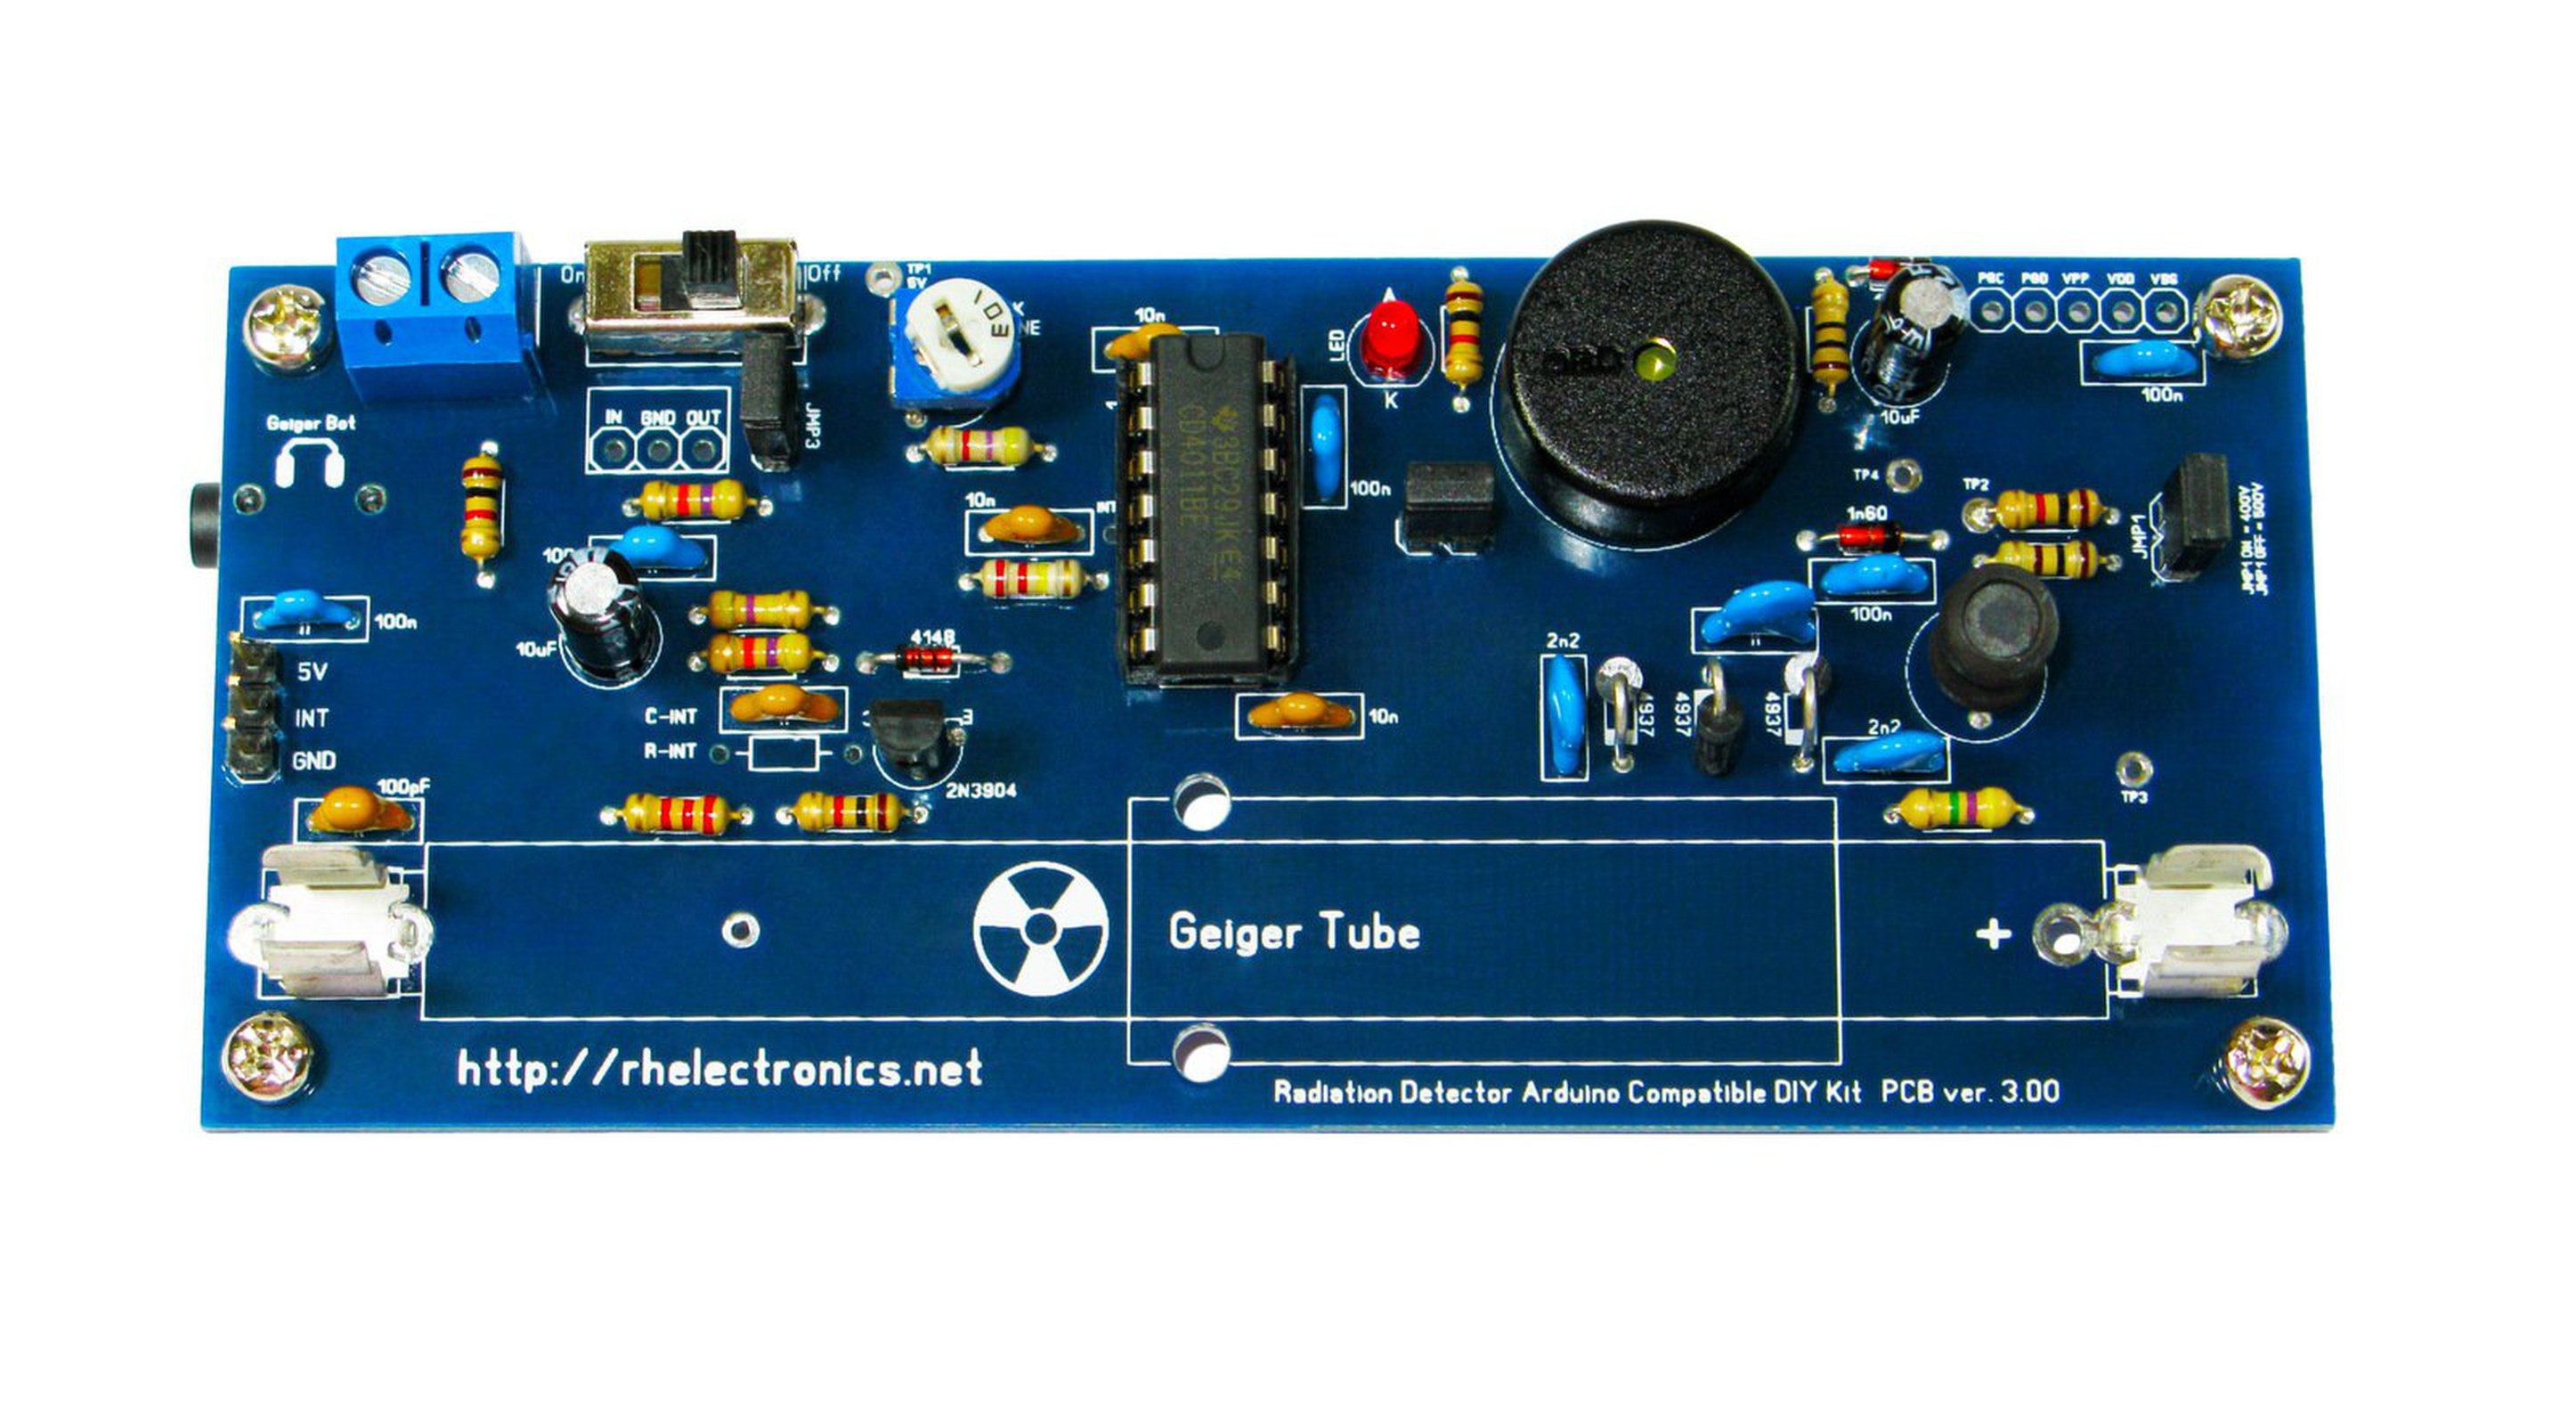 Geiger Counter Radiation Detector Diy Kit From Rh Electronics On Tindie Operation Circuit And Specific 4